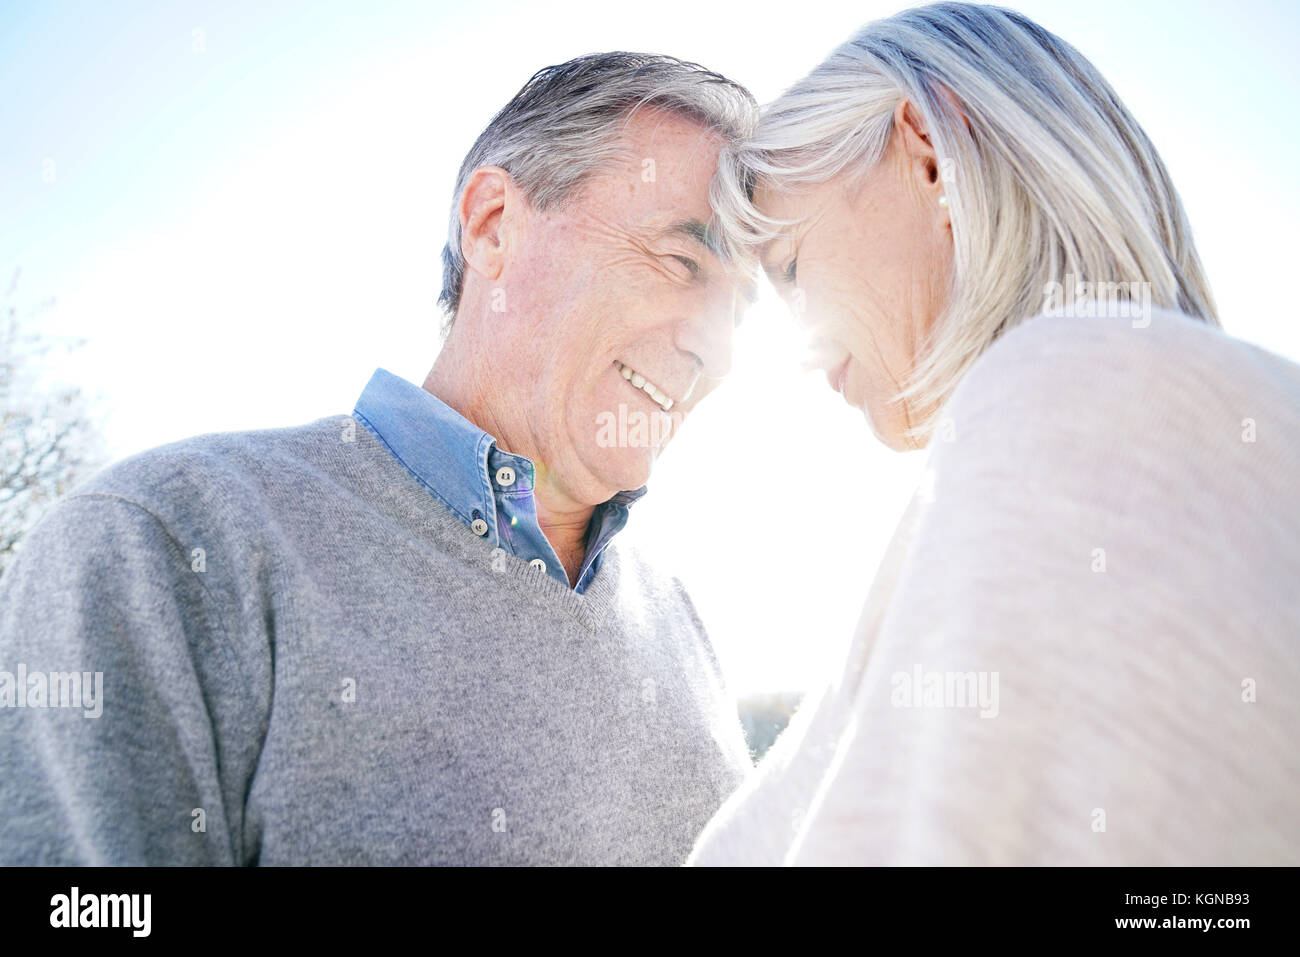 Portrait of senior couple embracing each other - Stock Image